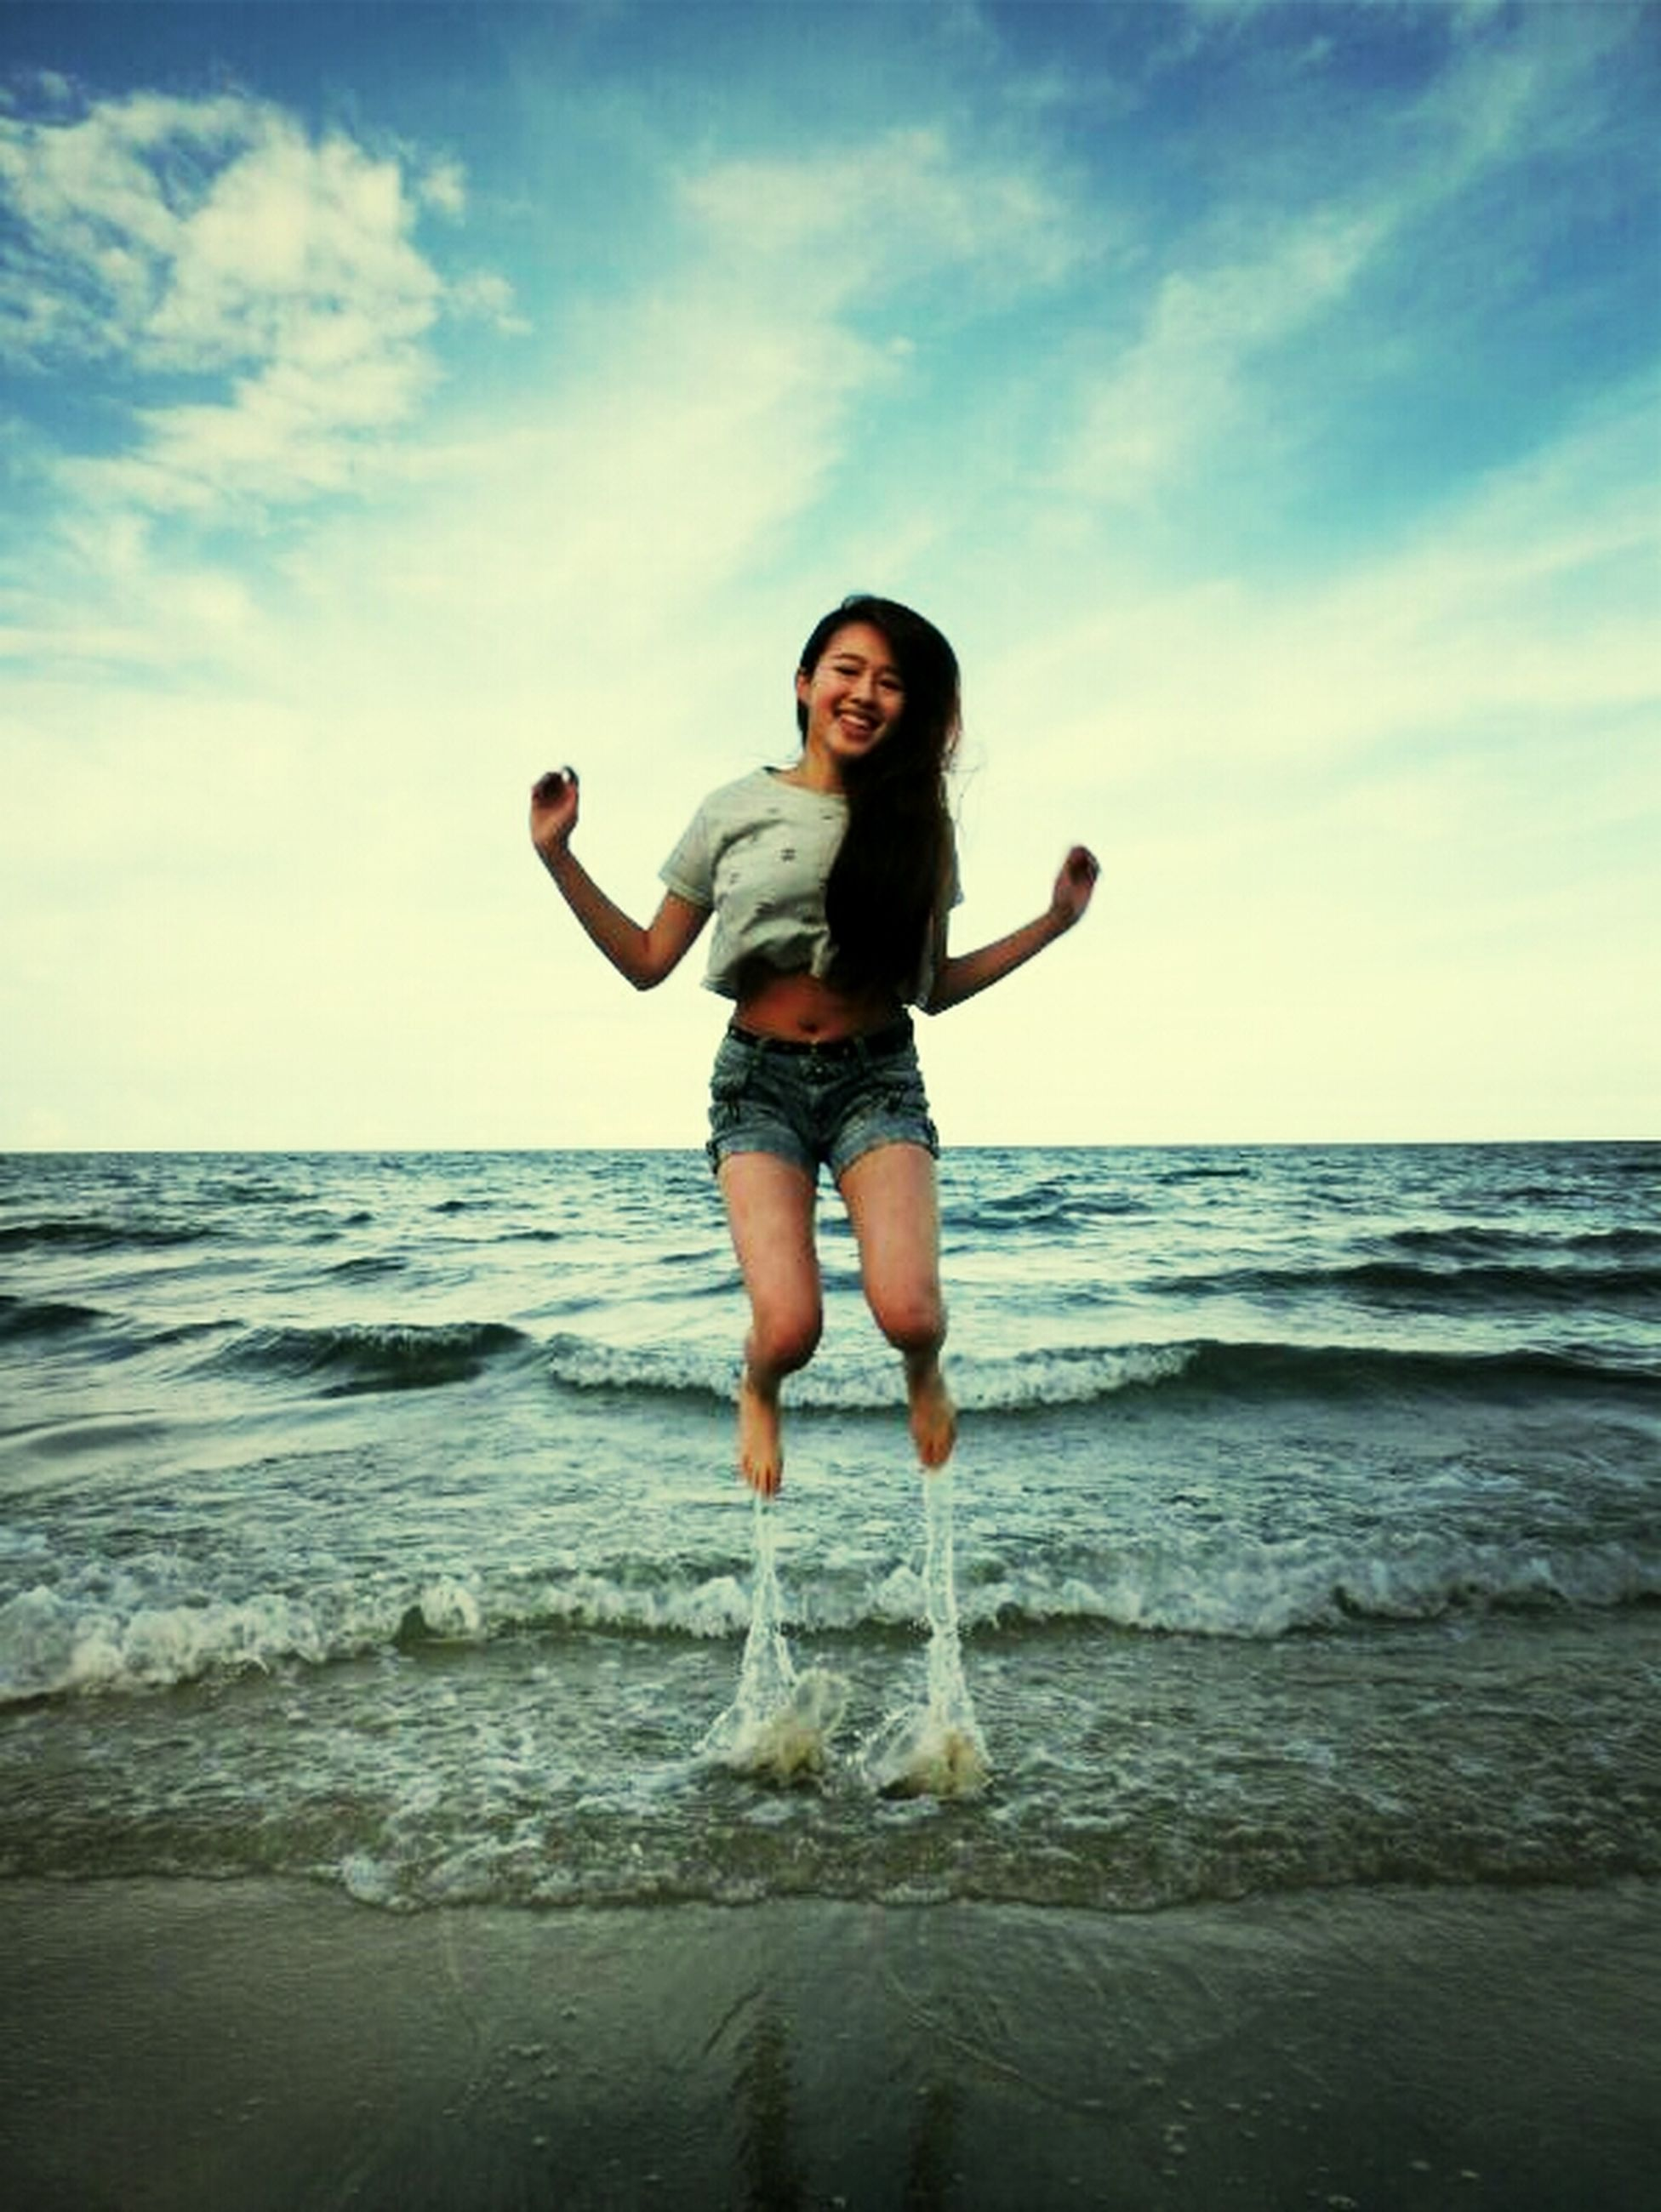 water, sea, person, lifestyles, beach, leisure activity, full length, horizon over water, young adult, sky, shore, vacations, casual clothing, enjoyment, young women, happiness, fun, portrait